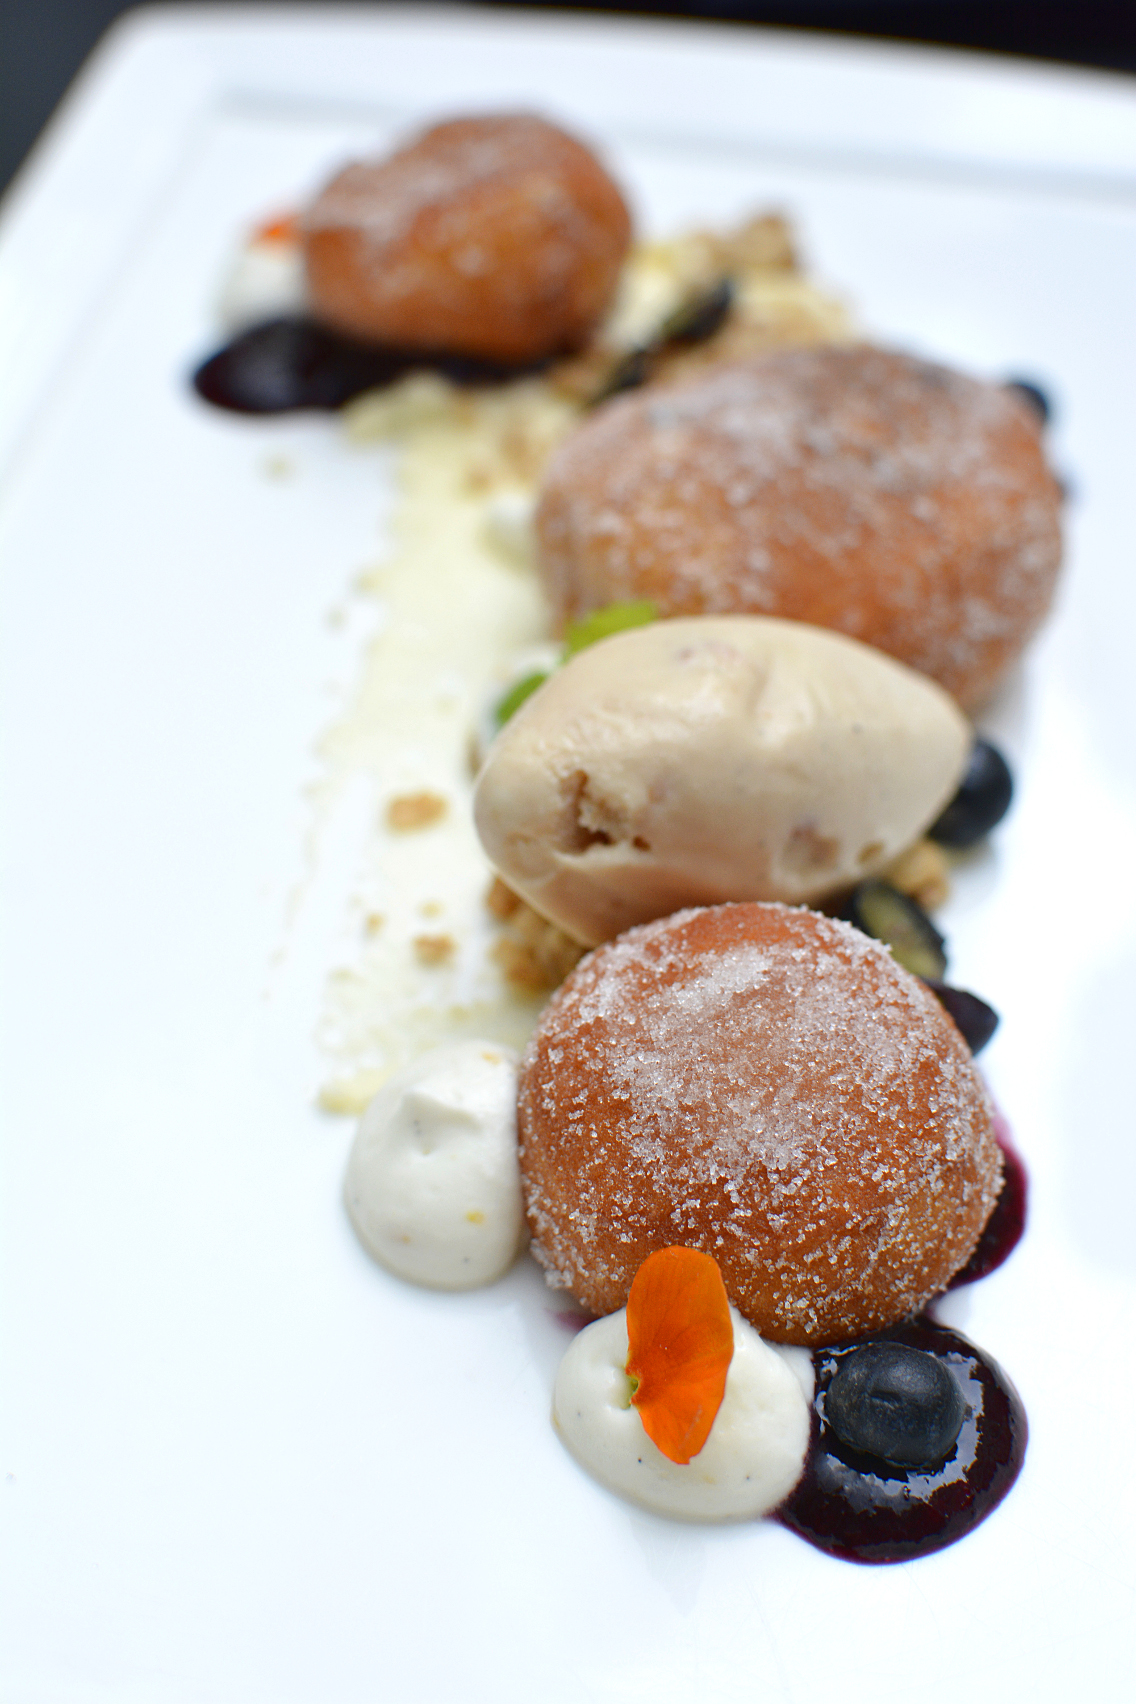 Sofitel Chicago Chestnut Provisions Blueberry Doughnuts 1